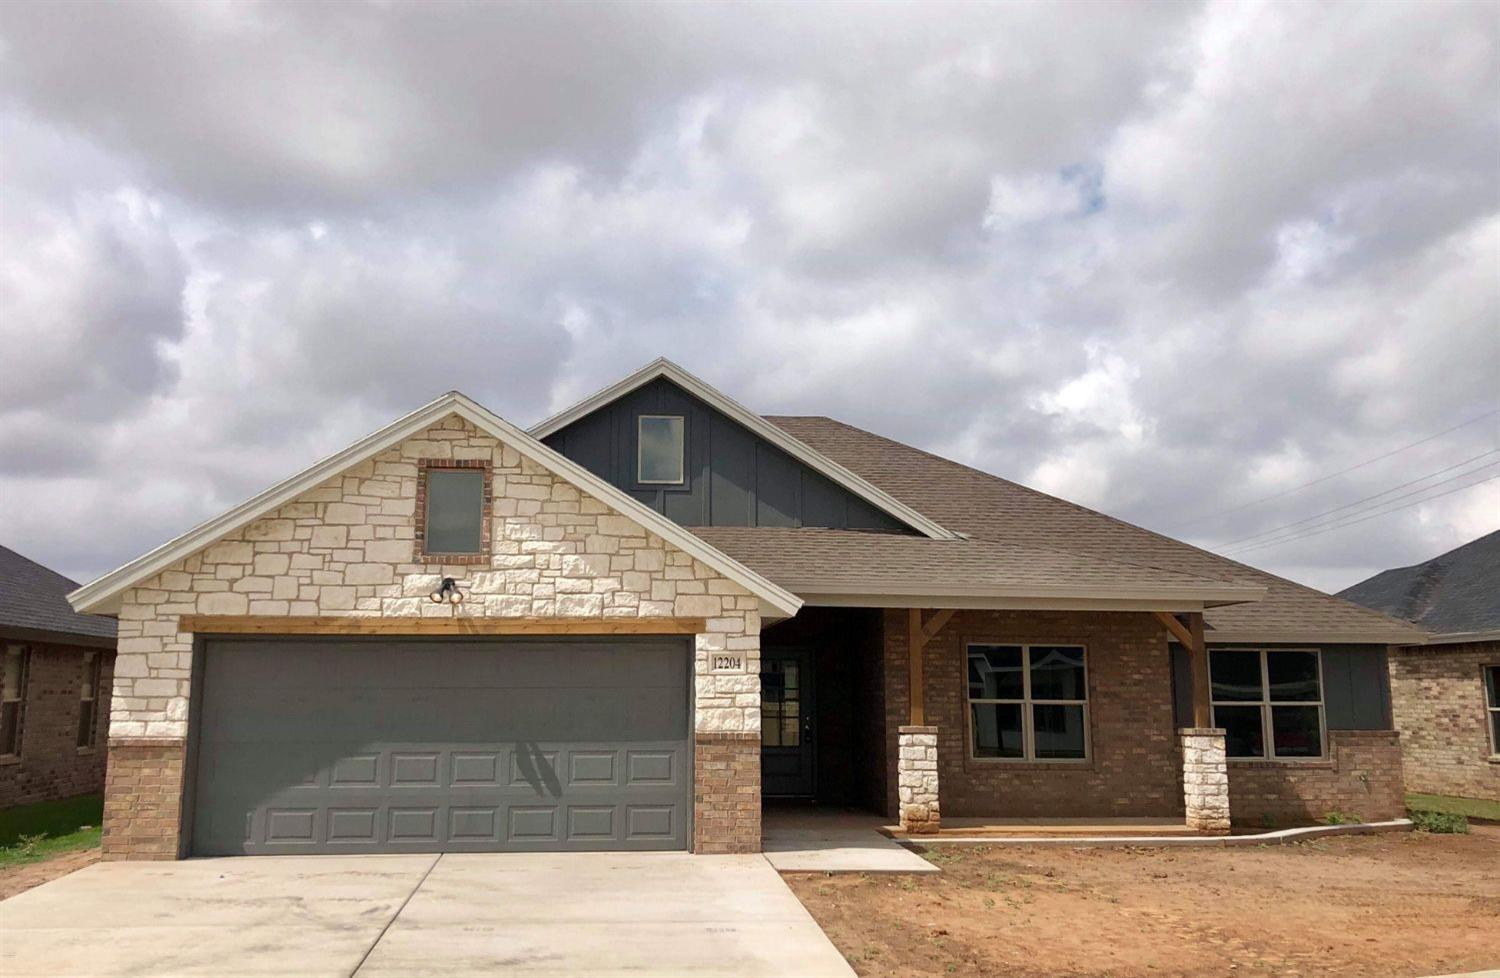 Beautiful New Home Built by Odyssey Homes in Lubbock - Cooper ISD on a quiet cul-de-sac street.  This home boasts an open concept floor plan with a large family room that features a vaulted ceiling. The family opens into the kitchen which has a center island with seating that provides a great place for additional guests.  There is also a bonus room that has tons of natural light and could be used for many different purposes. Just off the bonus room is a cedar pergola covering the back patio.  The large master suite has a vaulted ceiling and includes separate vanities and a garden tub along with a large walk-in closet. Sod, sprinkler system, 6' fence with steel posts included.